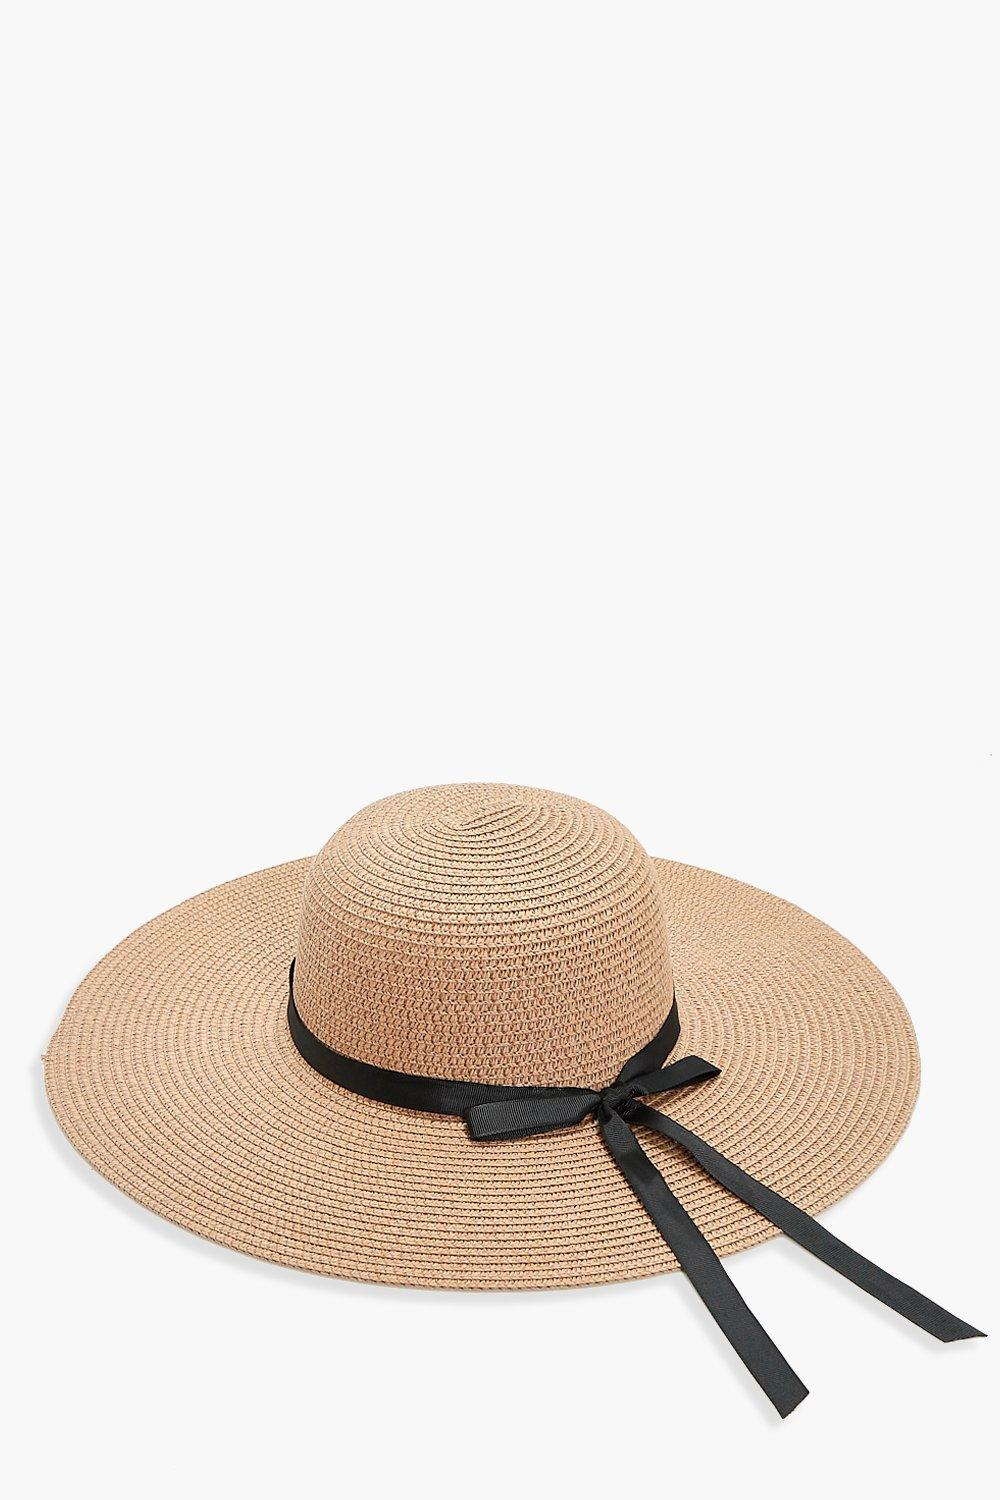 Ribbon Straw Floppy Hat - natural - Evelyn Ribbon